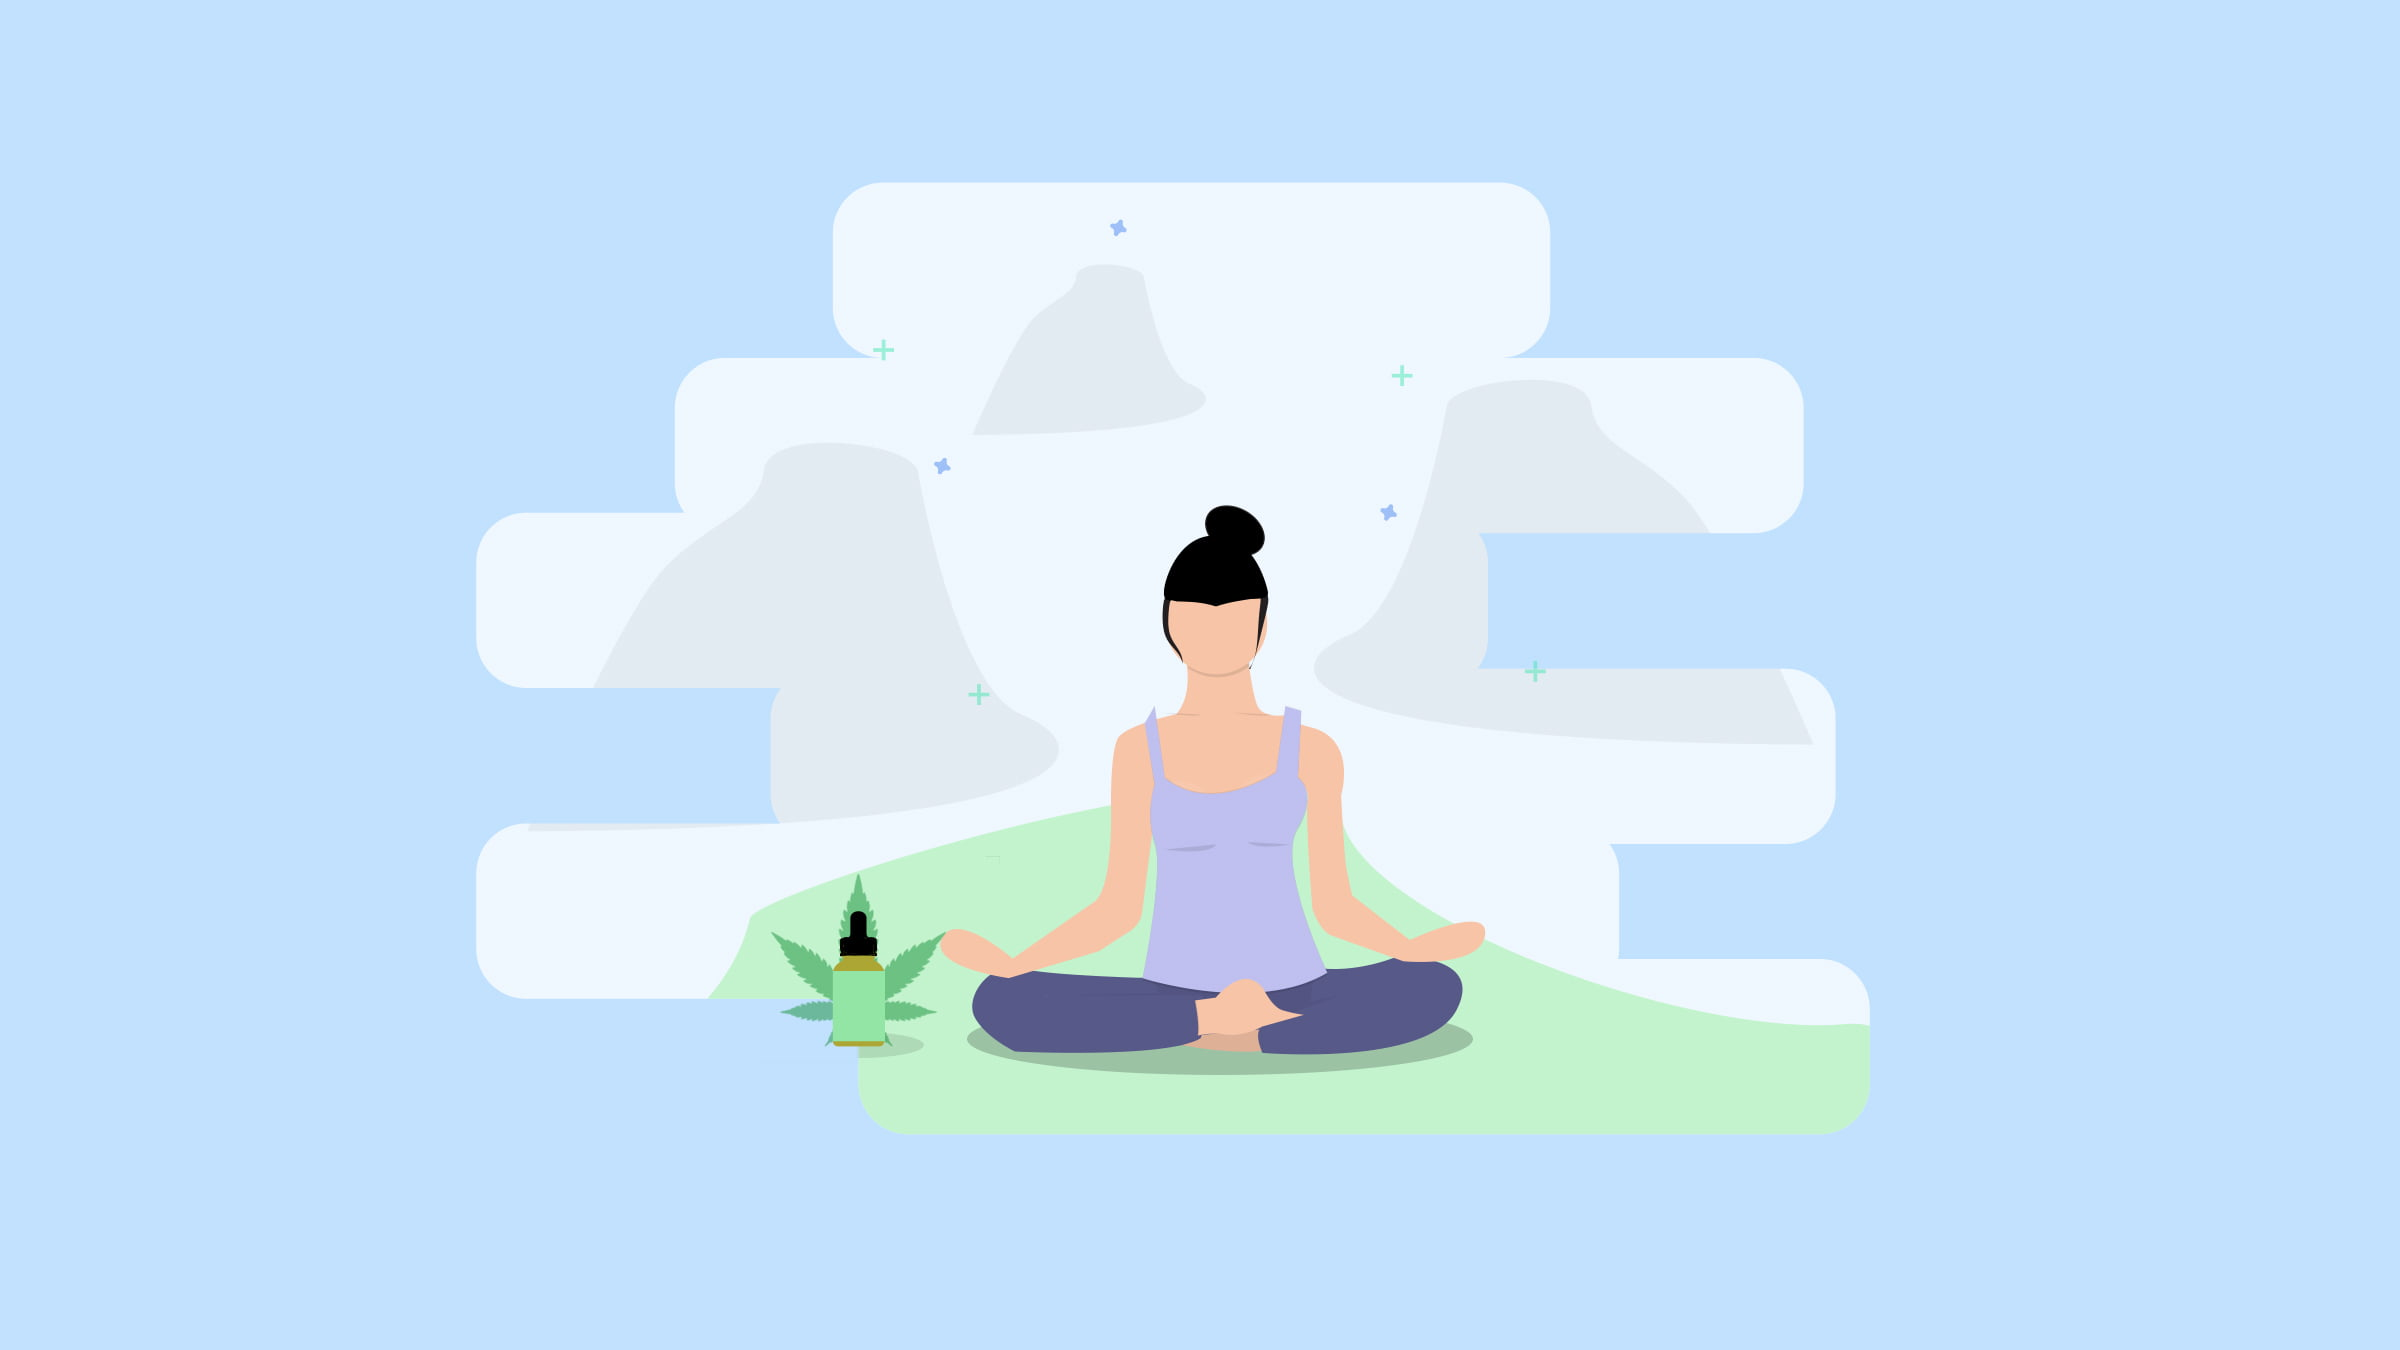 Illustration of a woman with ADHD sitting on a green yoga mat